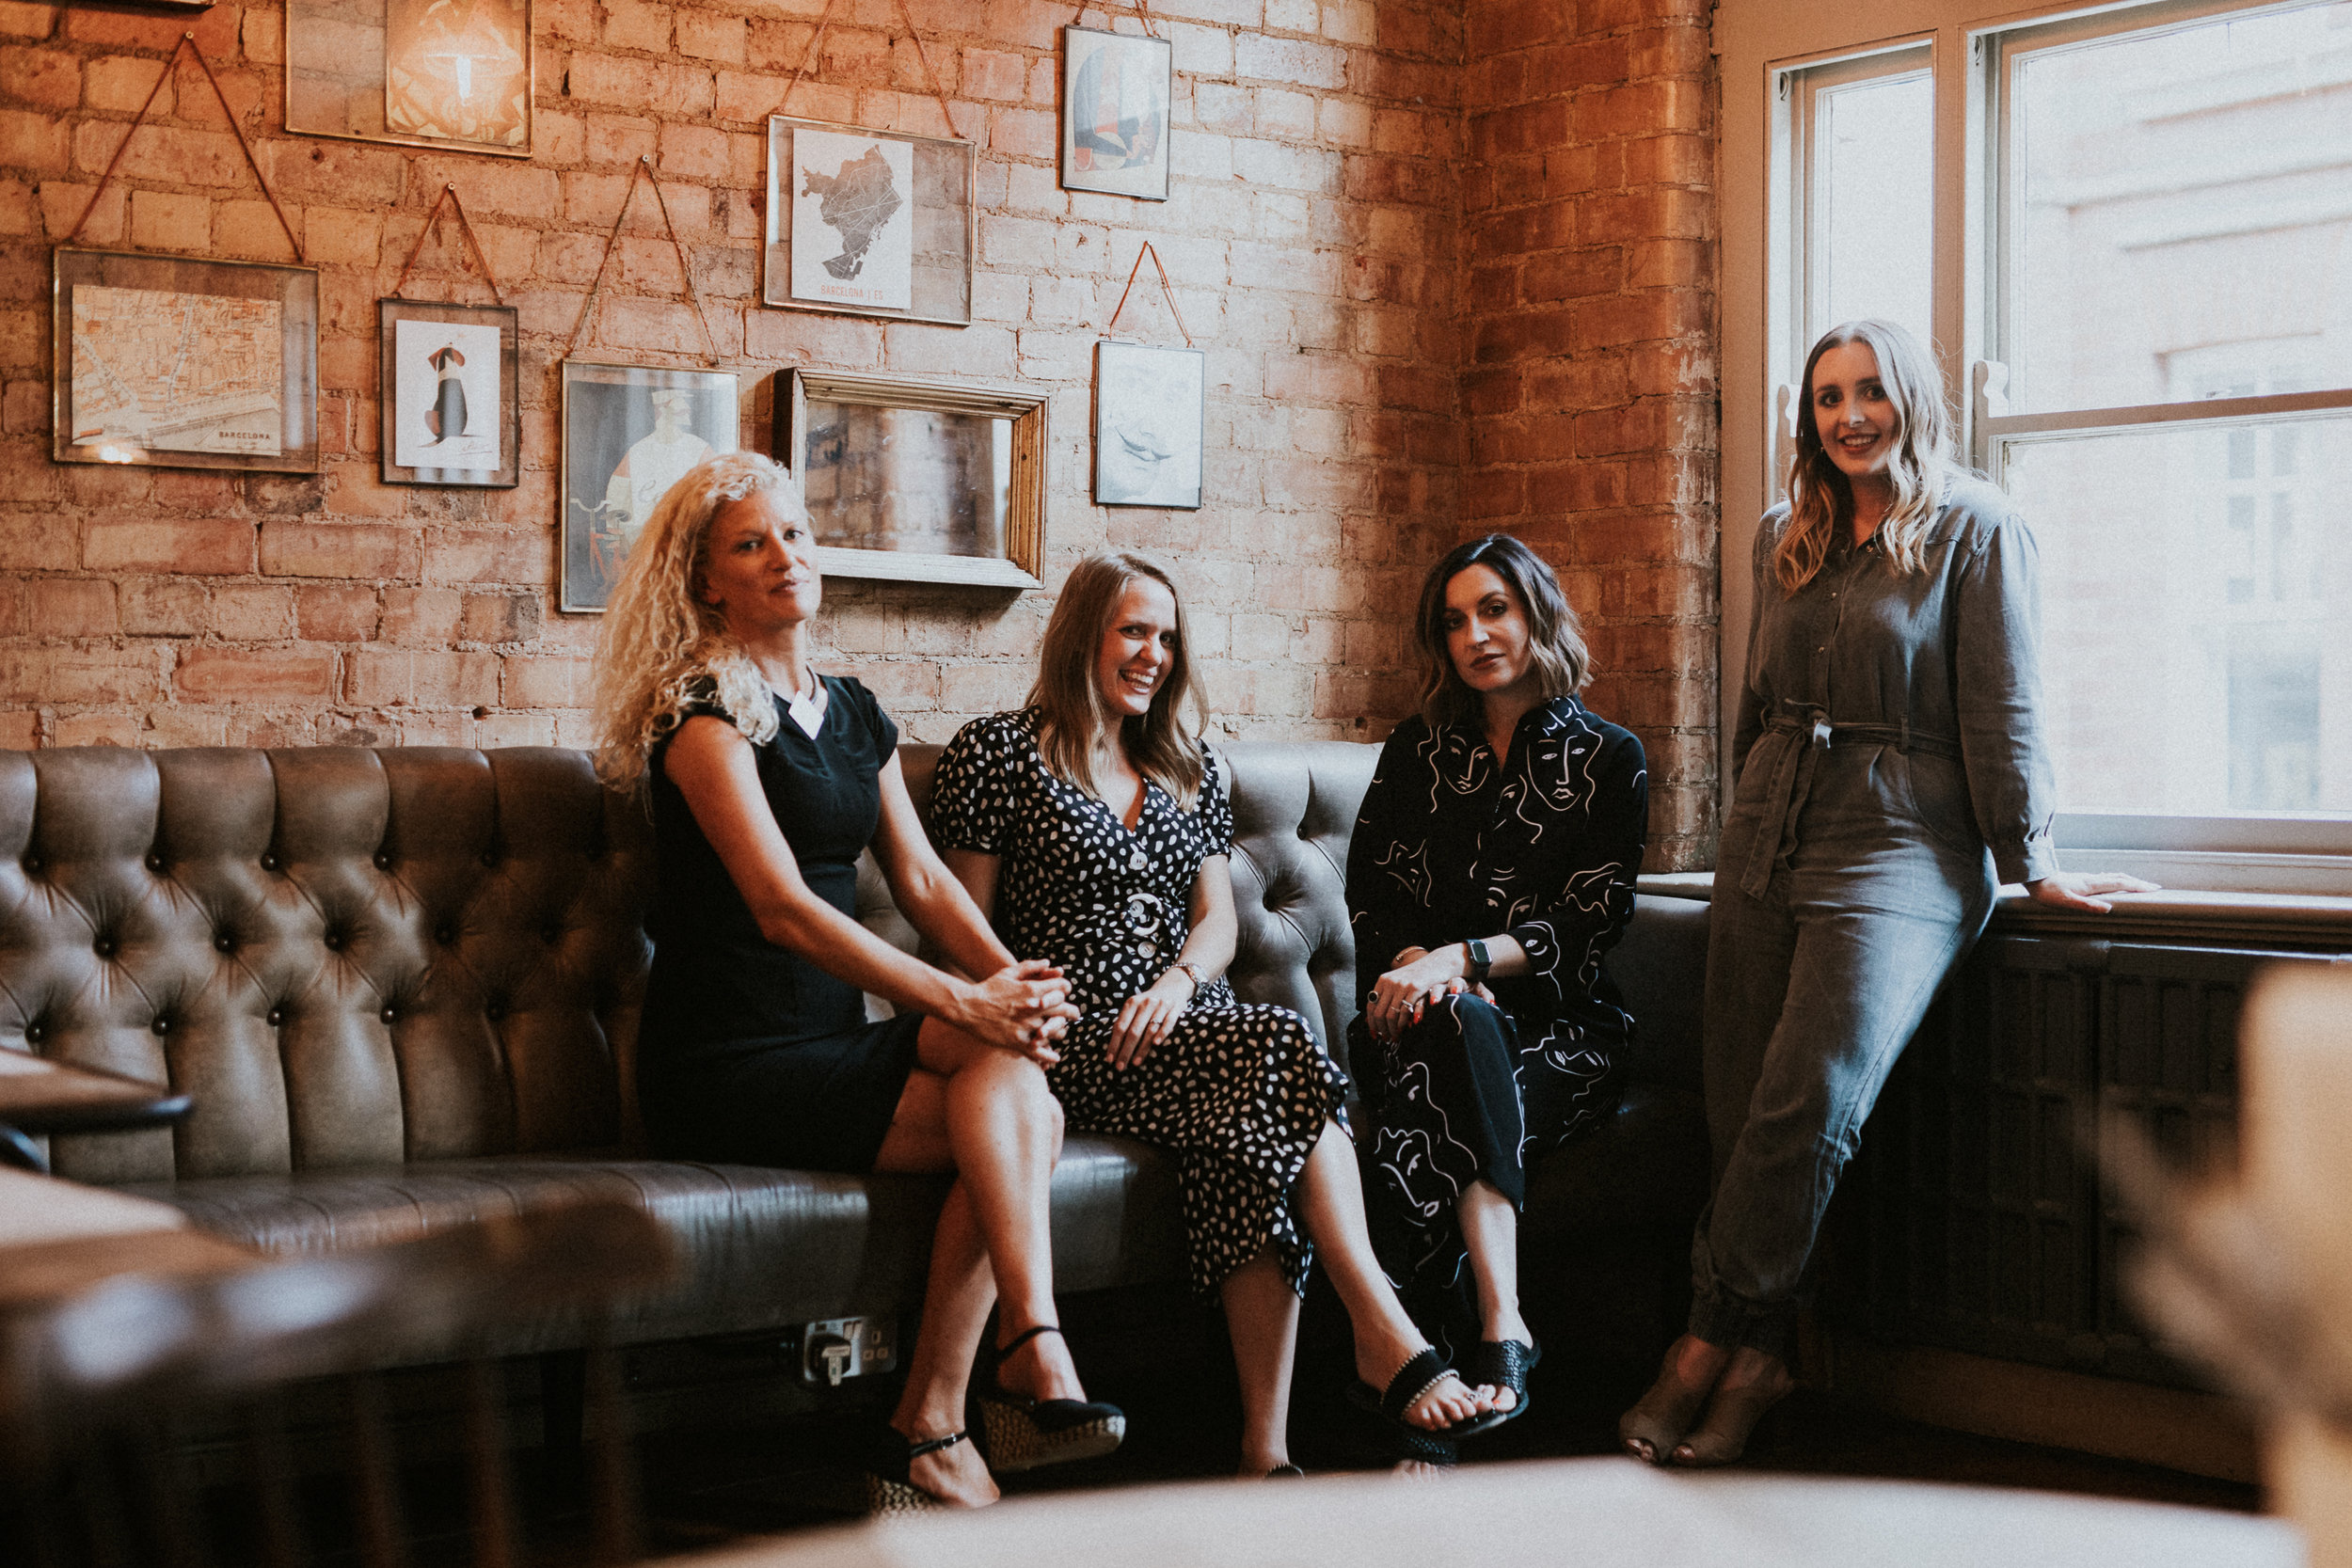 From left: Philippa Charrier (Fat Properties), Sarah Hodge (Maygreen Investments), Jade Bailey (Beespace) and Bekki Stovell (Steele & Stovell)